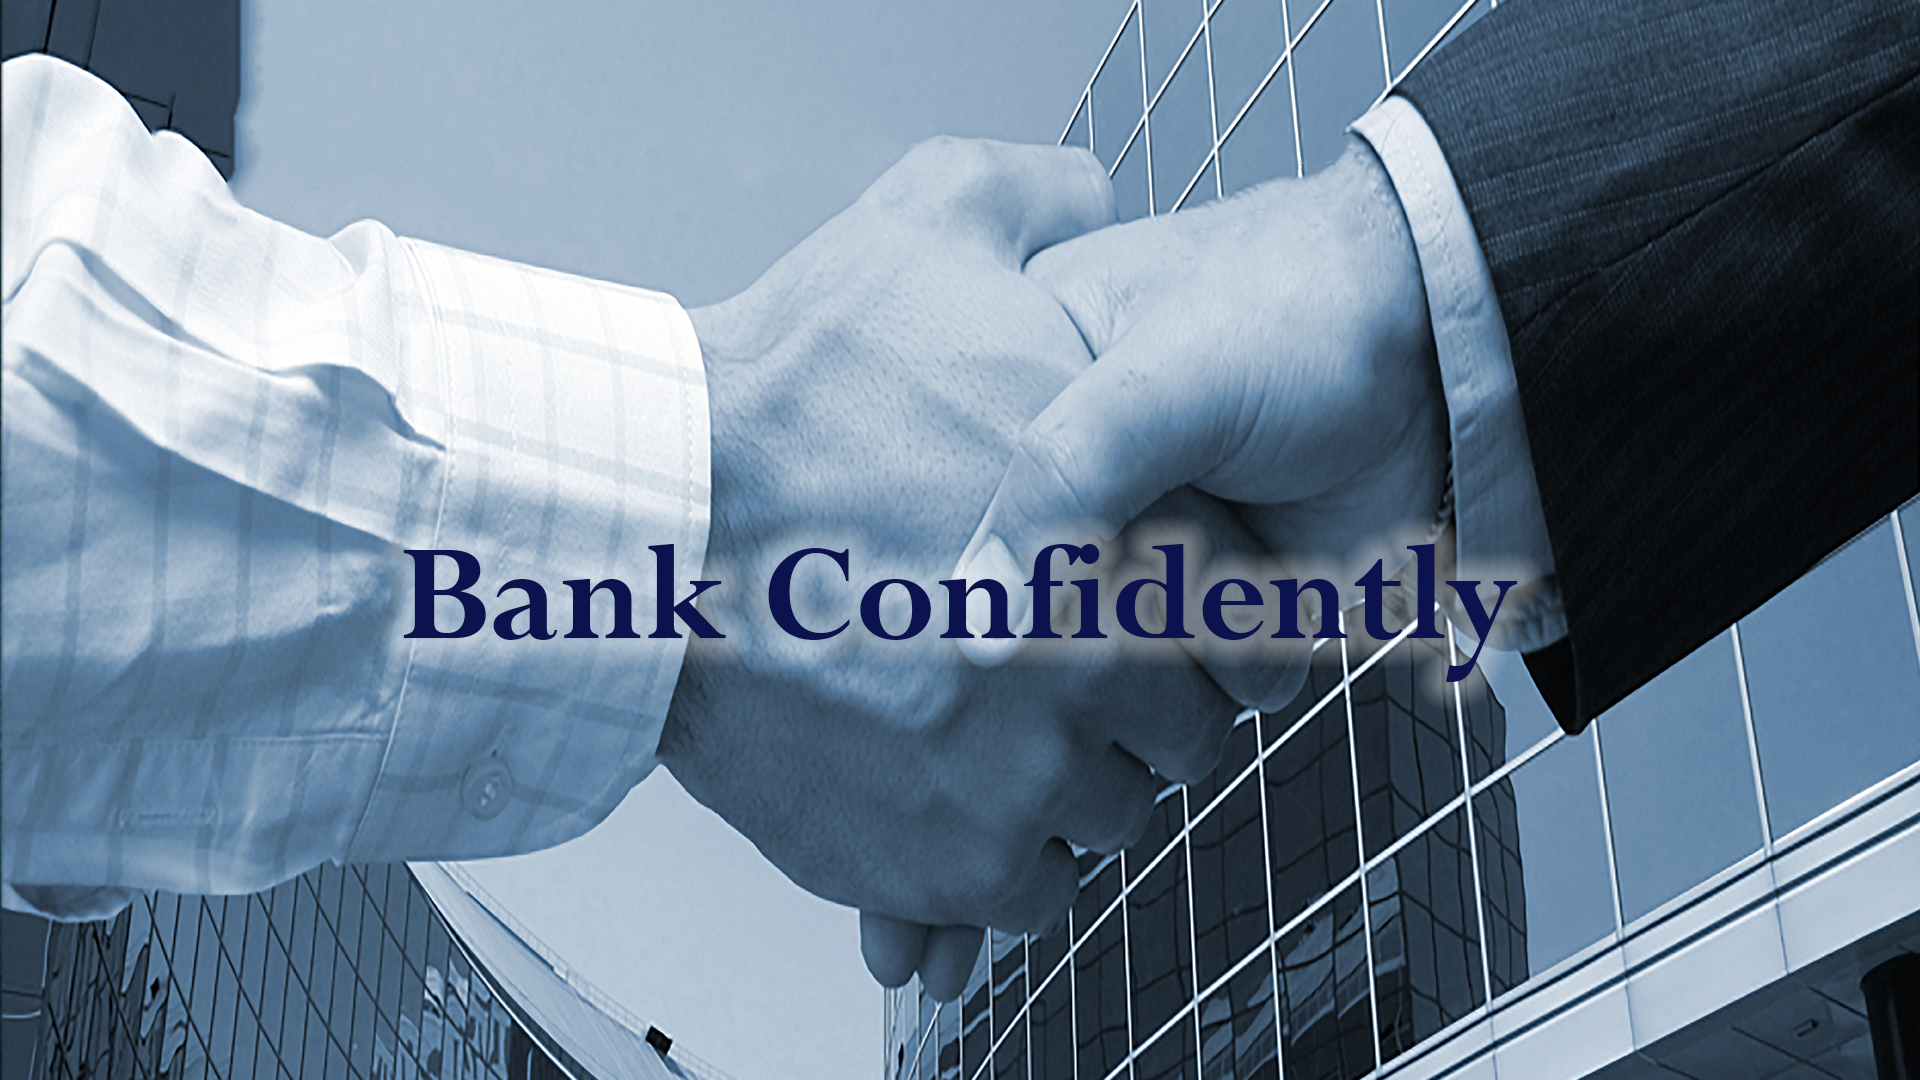 Shaking hands because you can bank confidently